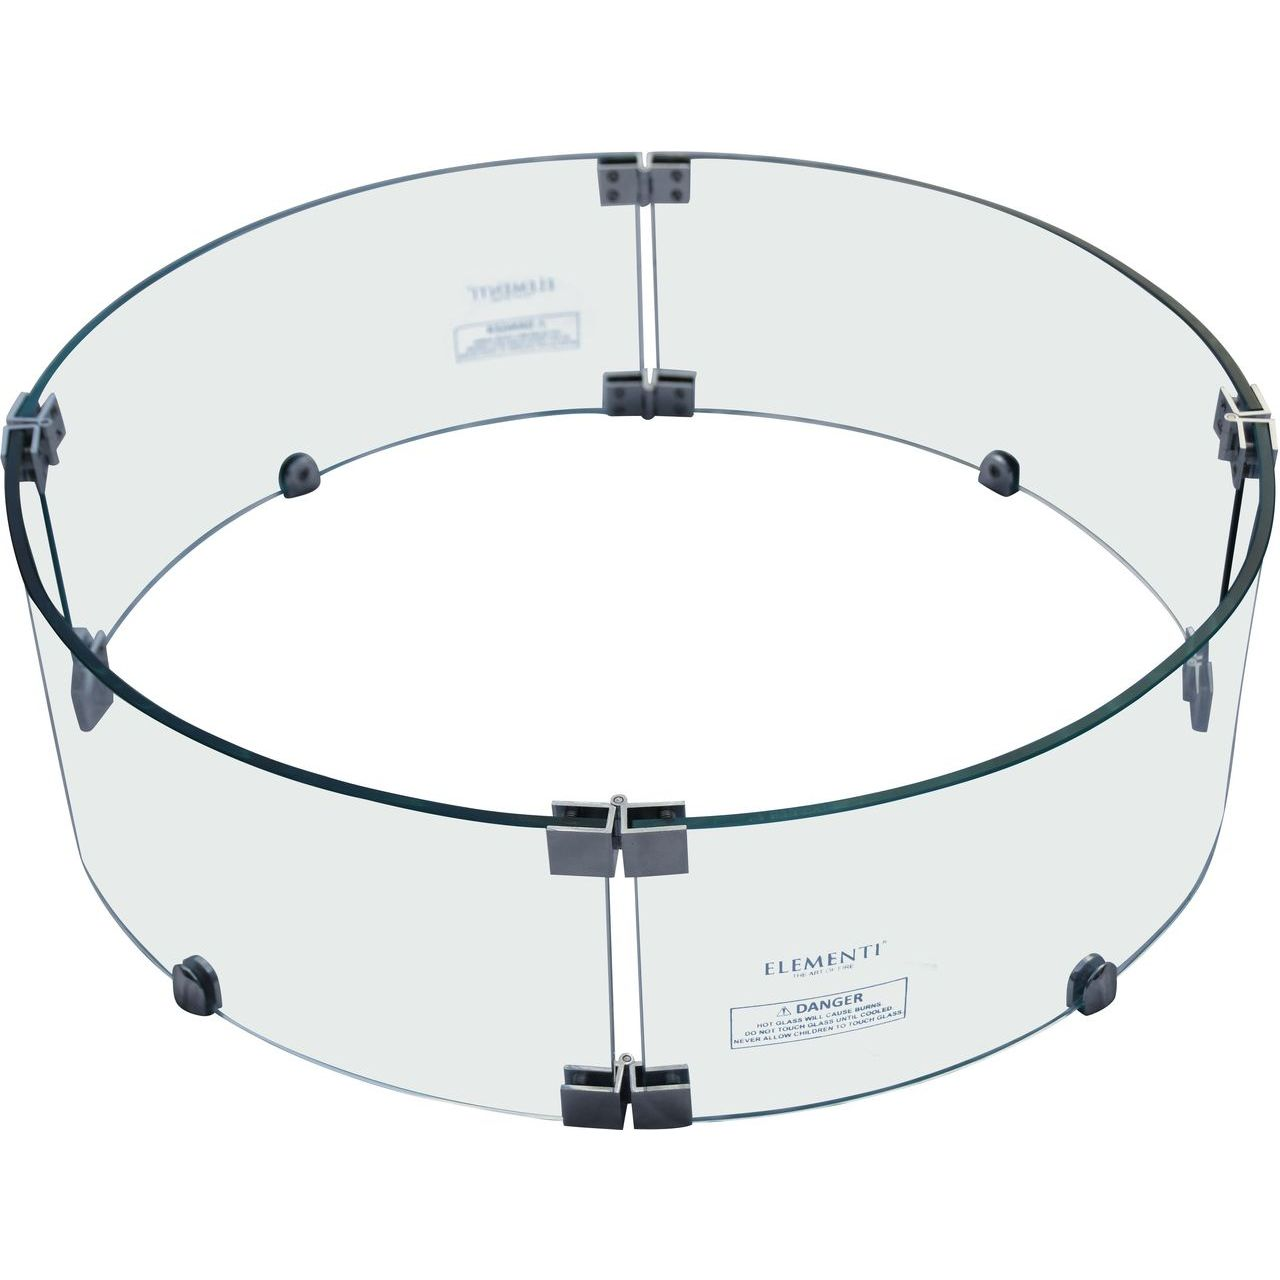 Elementi OFG145 -WS Round Window Shields For Manchester Fire Table